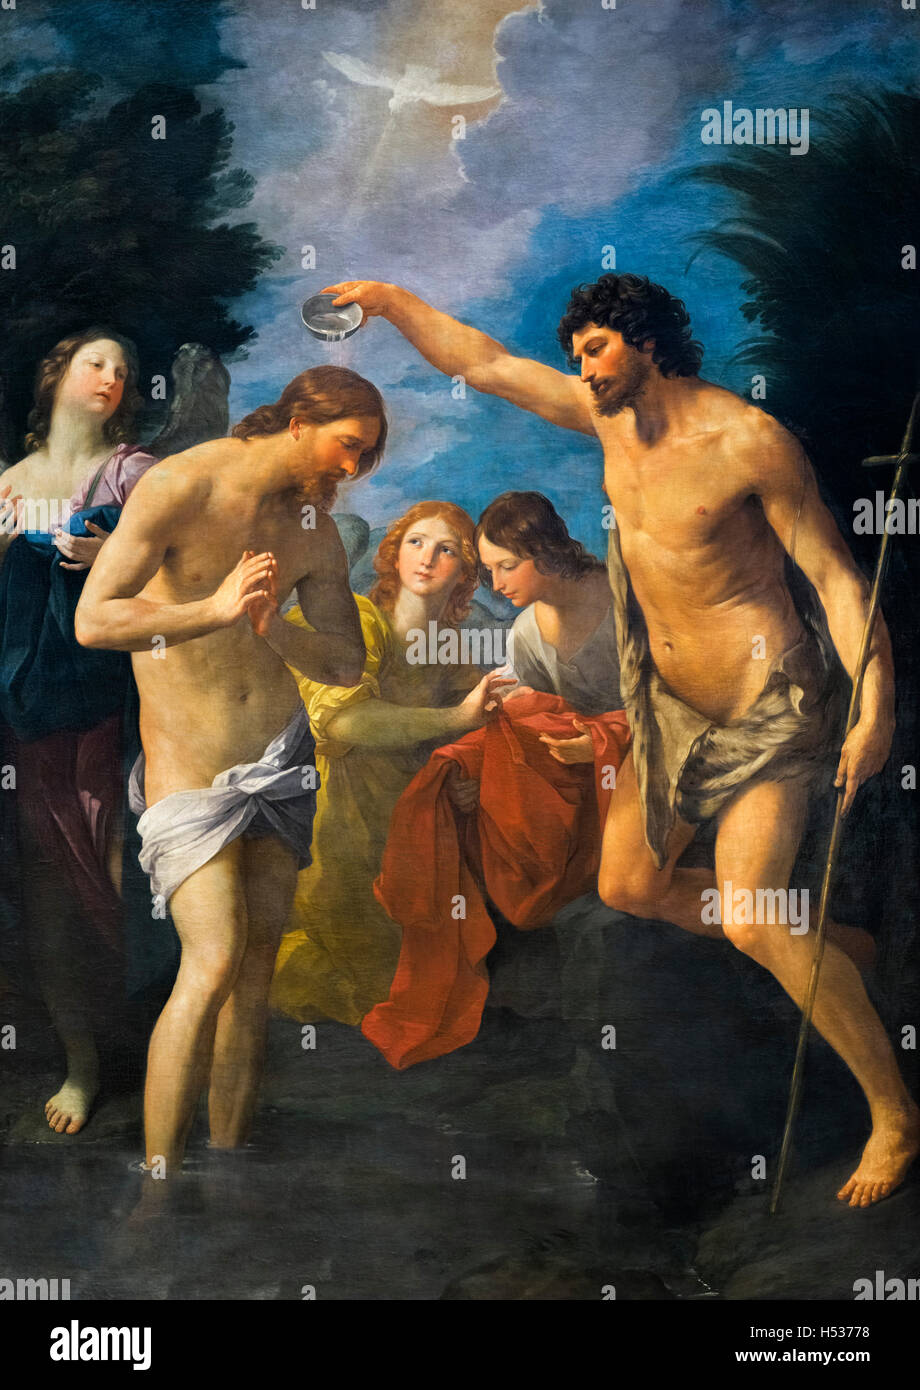 The Baptism of Christ  by Guido Reni (1575-1642), c.1622/3 - Stock Image